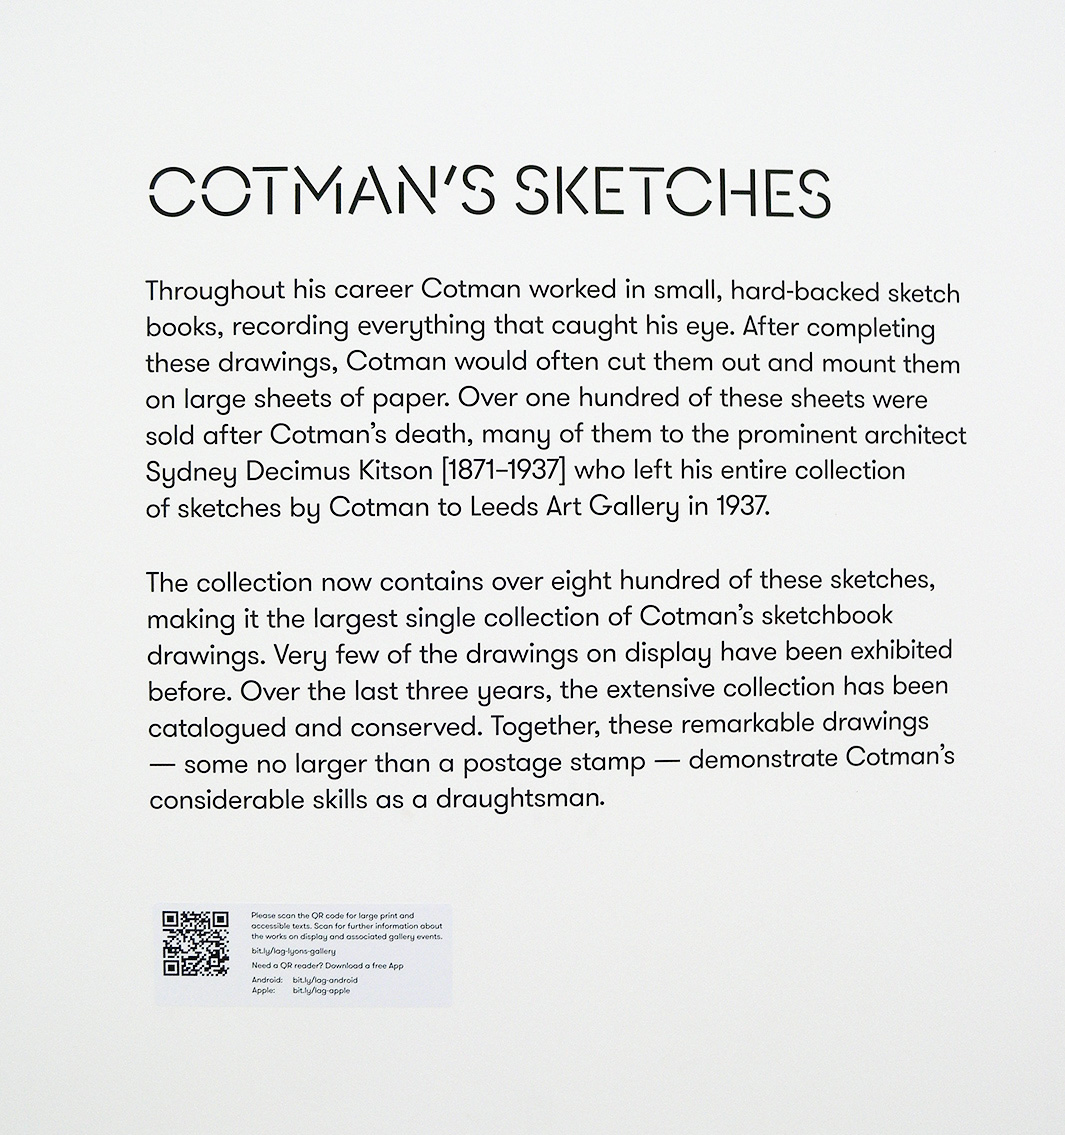 Cotman sketches text board